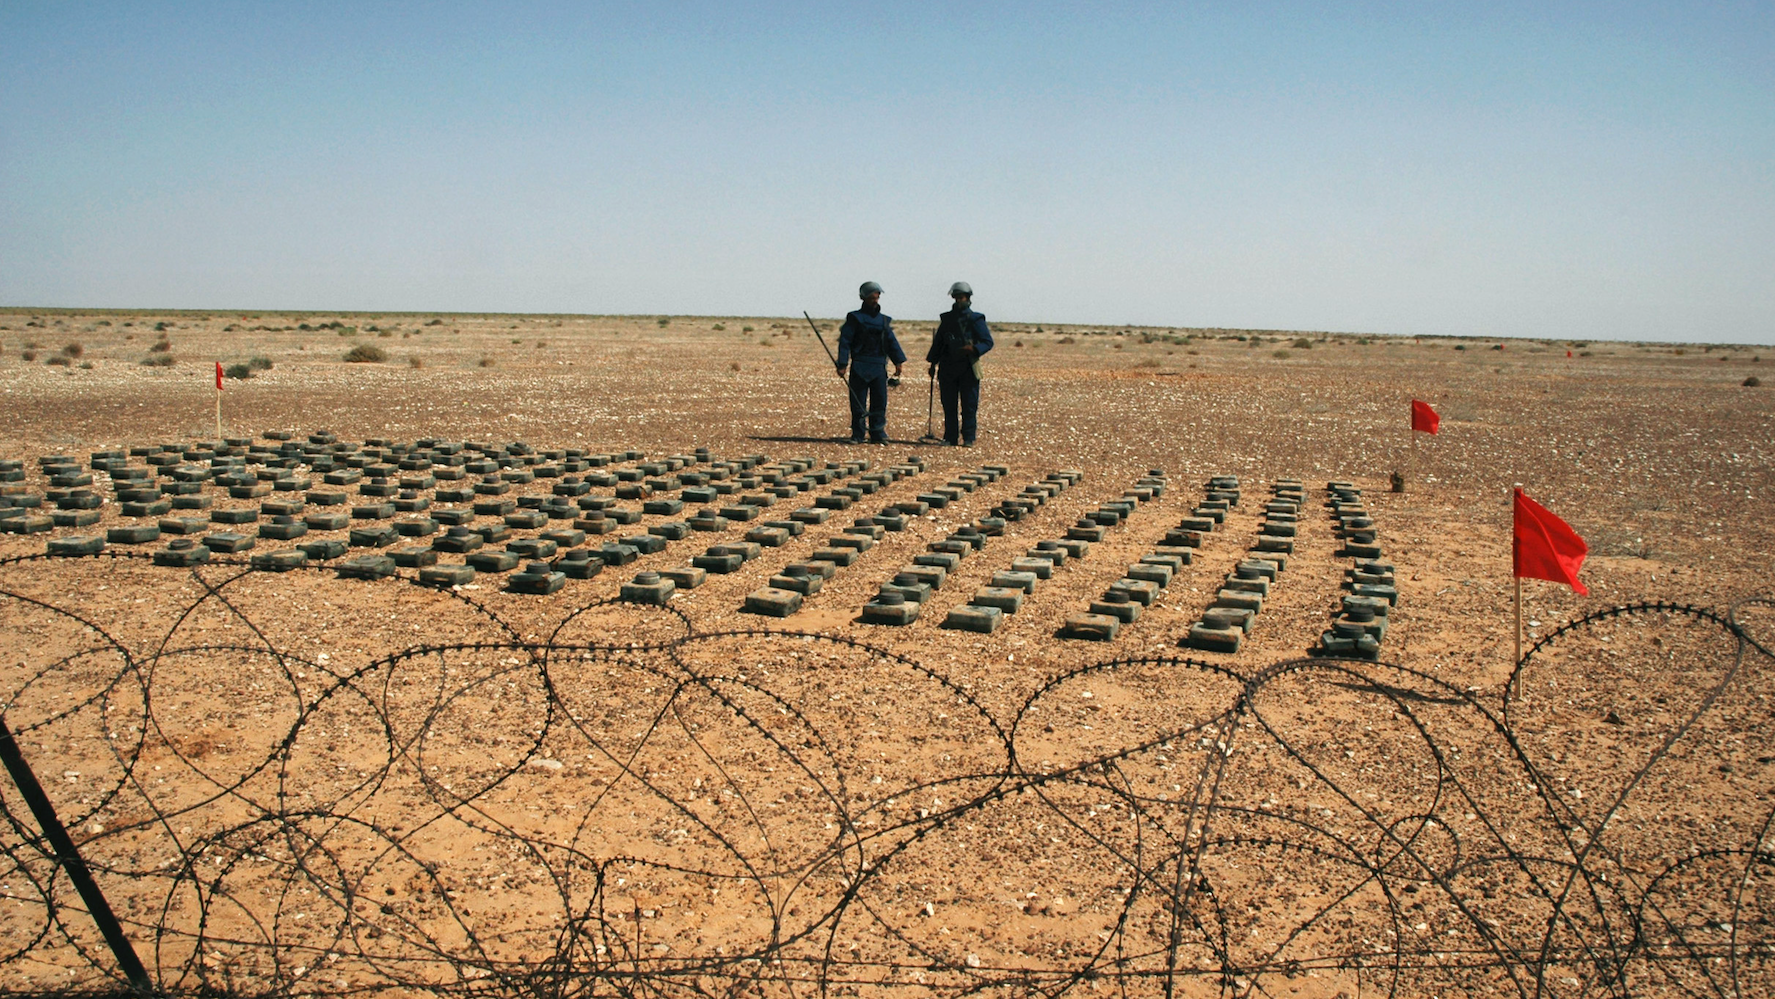 Detonating Landmines Is Better For The Environment Than Deactivating Them, Research Suggests